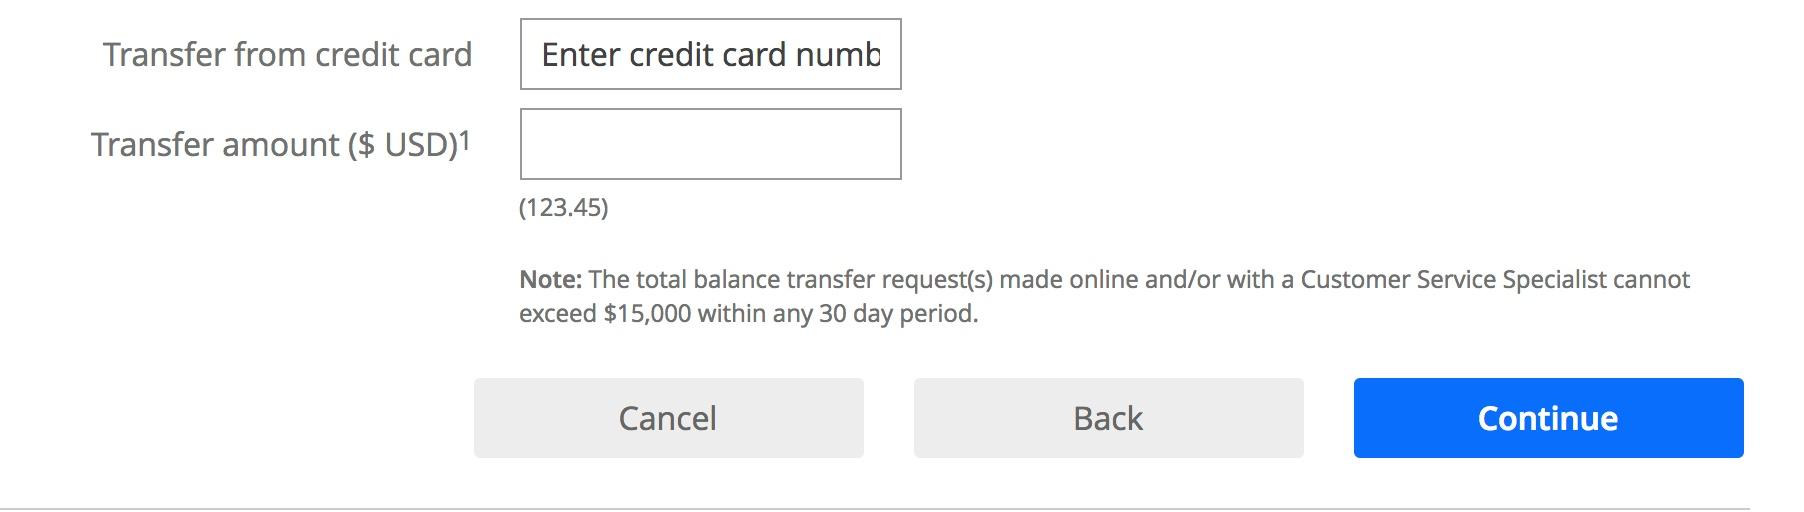 A screen shot of a credit card balance transfer option.